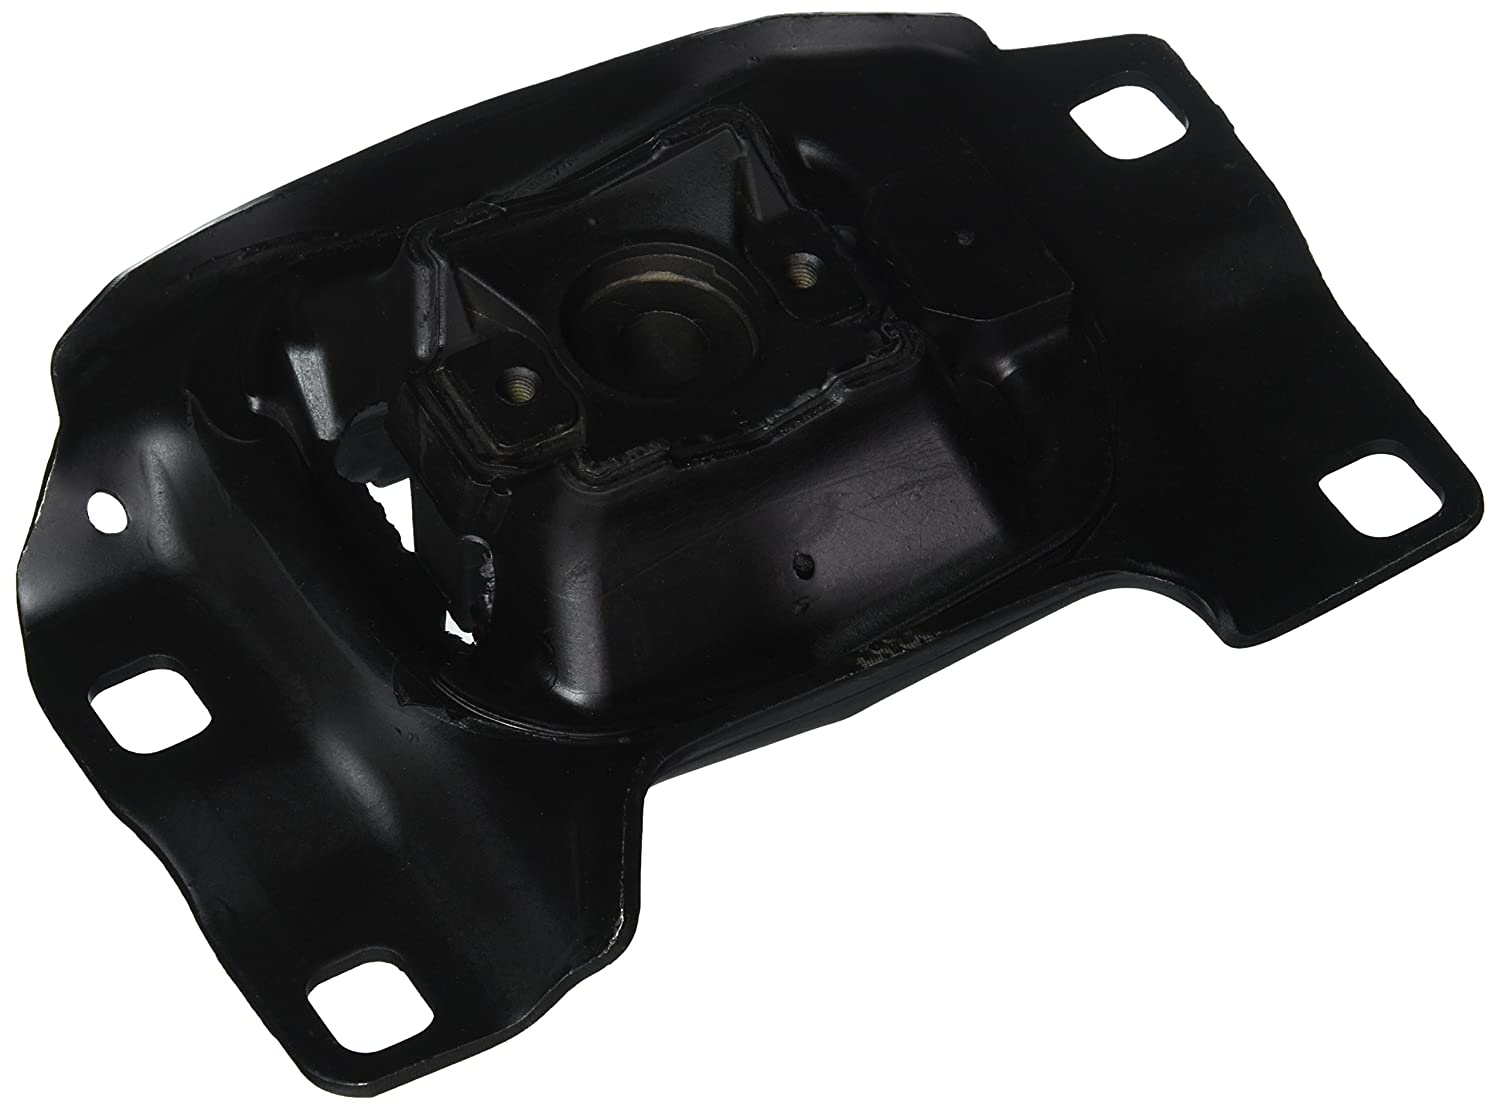 Eagle BHP 4254 Motor Transmission Mount 1.6 2.0 2.4 2.5 L for Ford Escape Explorer Volvo C30 C70 V50